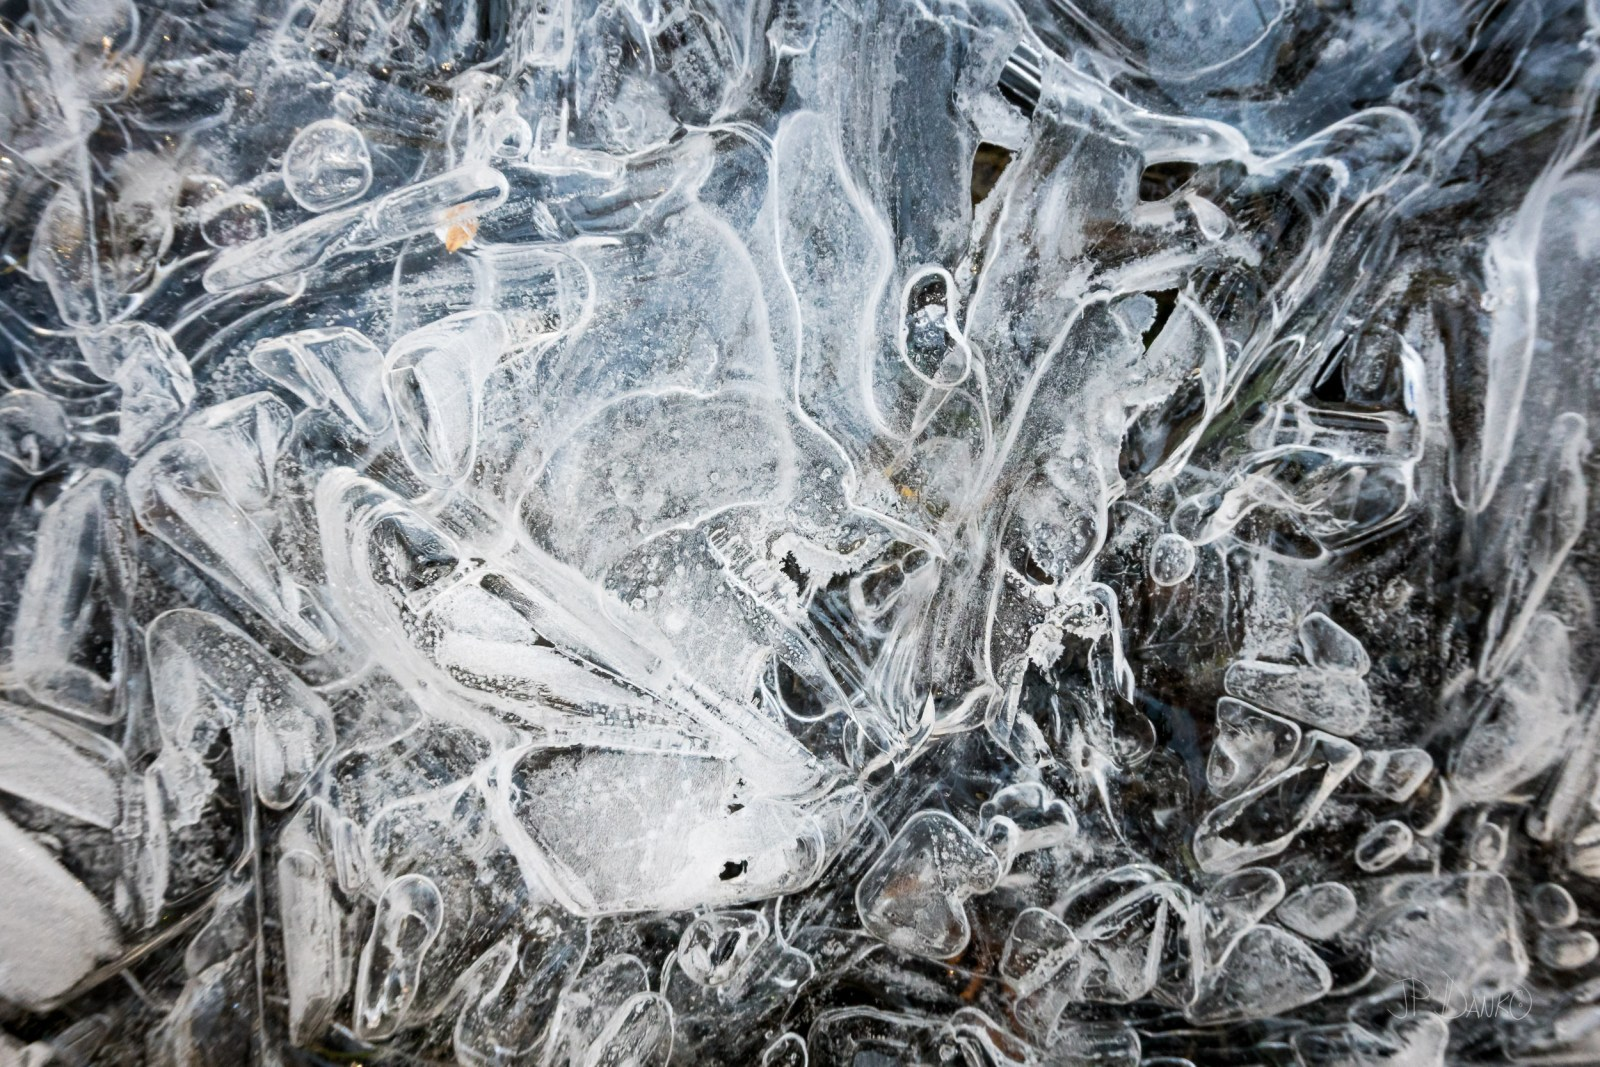 Ice crystals frozen in abstract design in lake warming planet